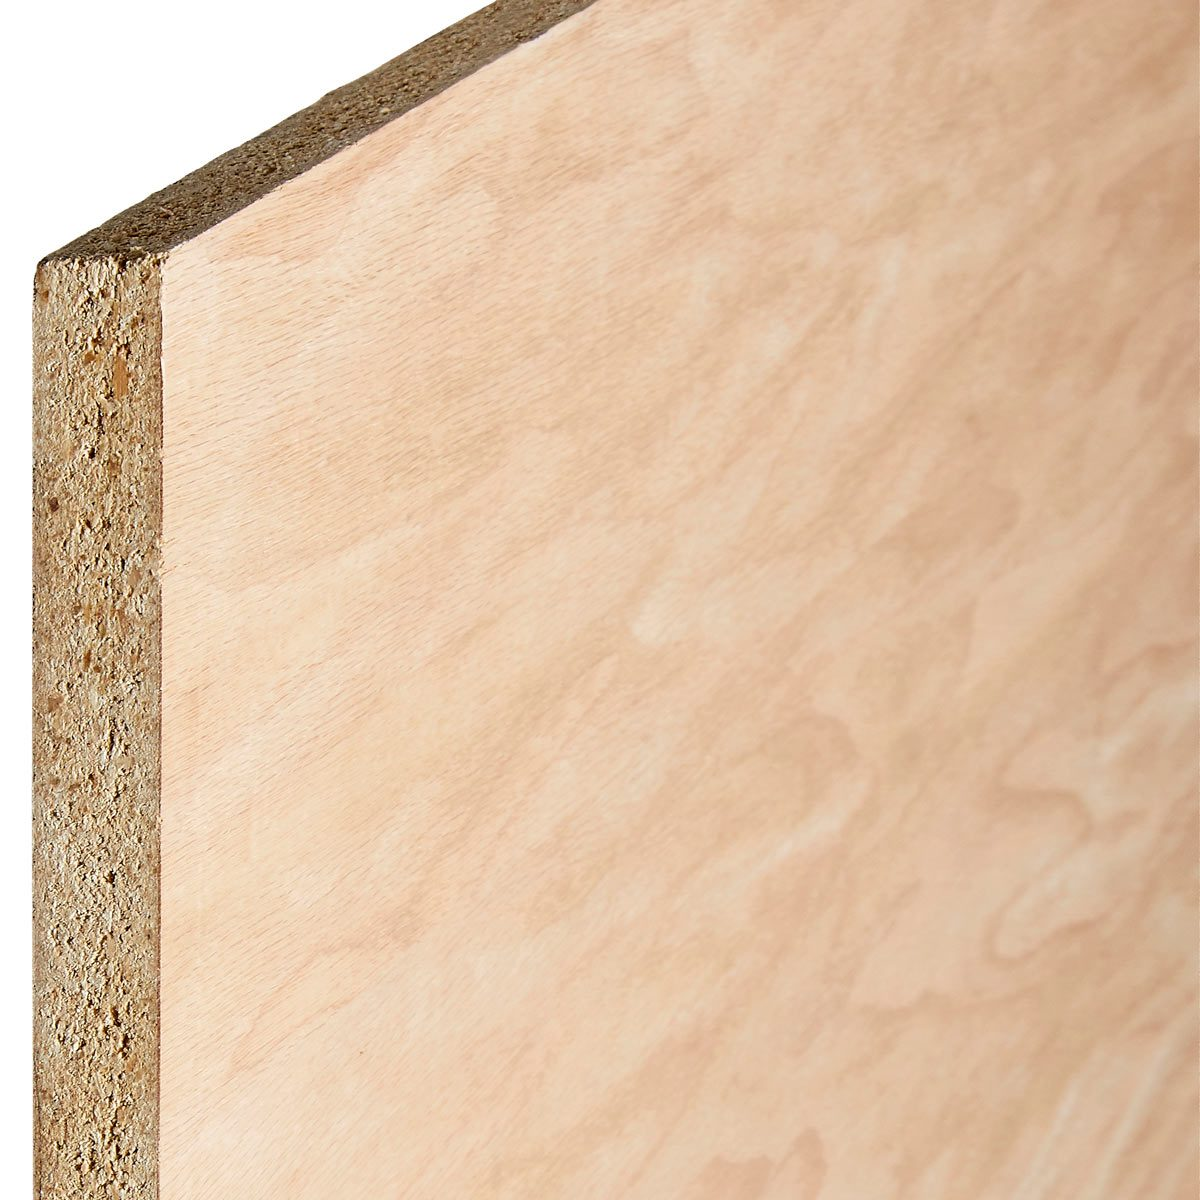 particleboard core plywood